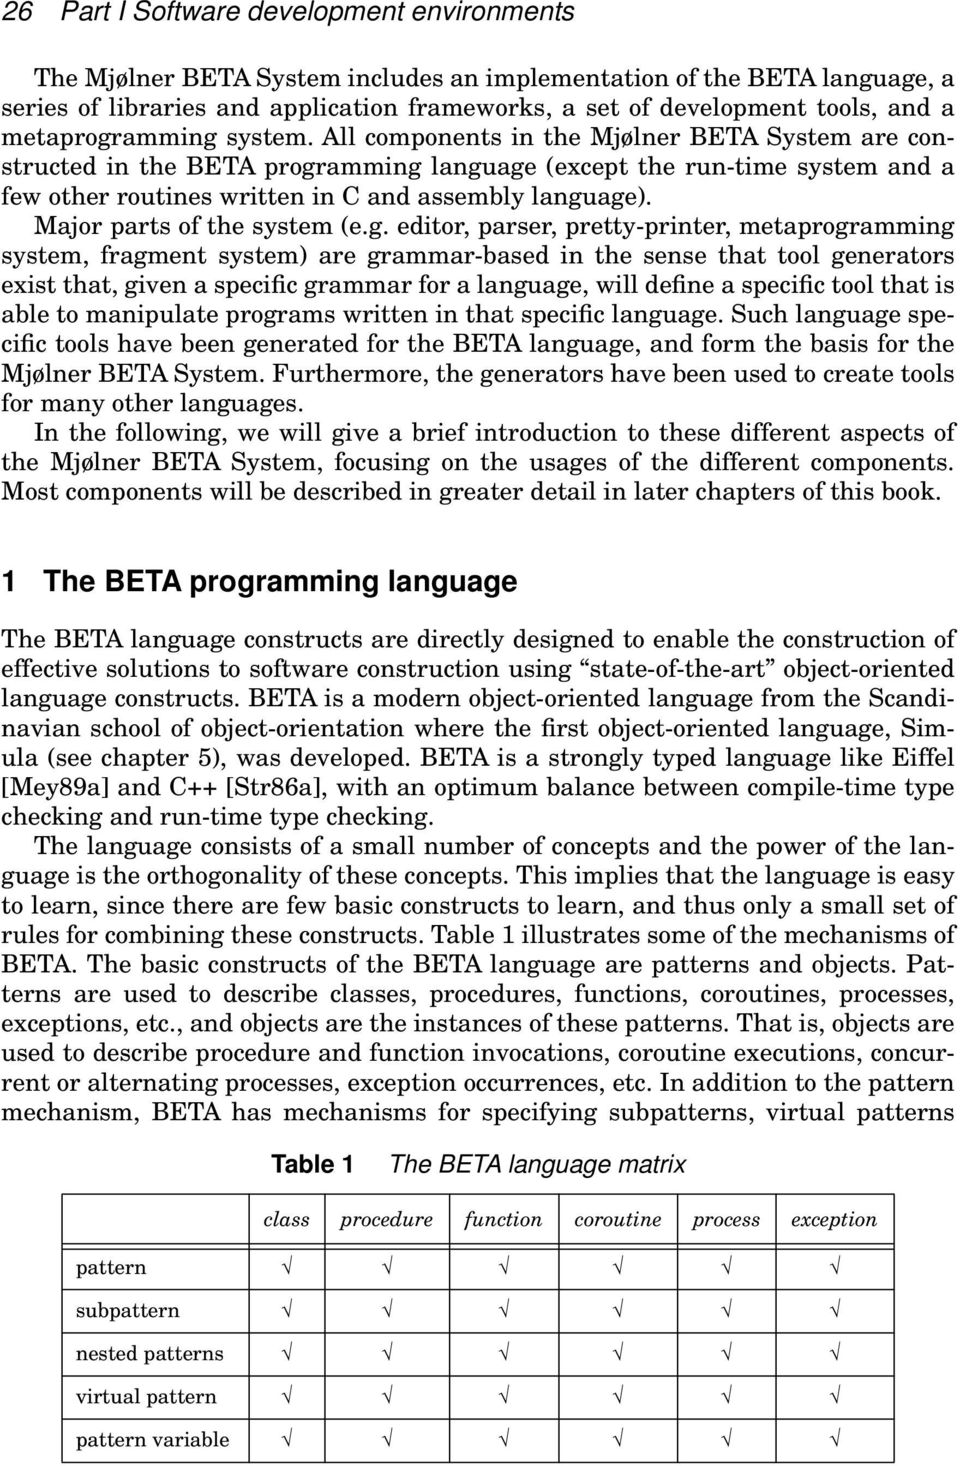 All components in the Mjølner BETA System are constructed in the BETA programming language (except the run-time system and a few other routines written in C and assembly language).